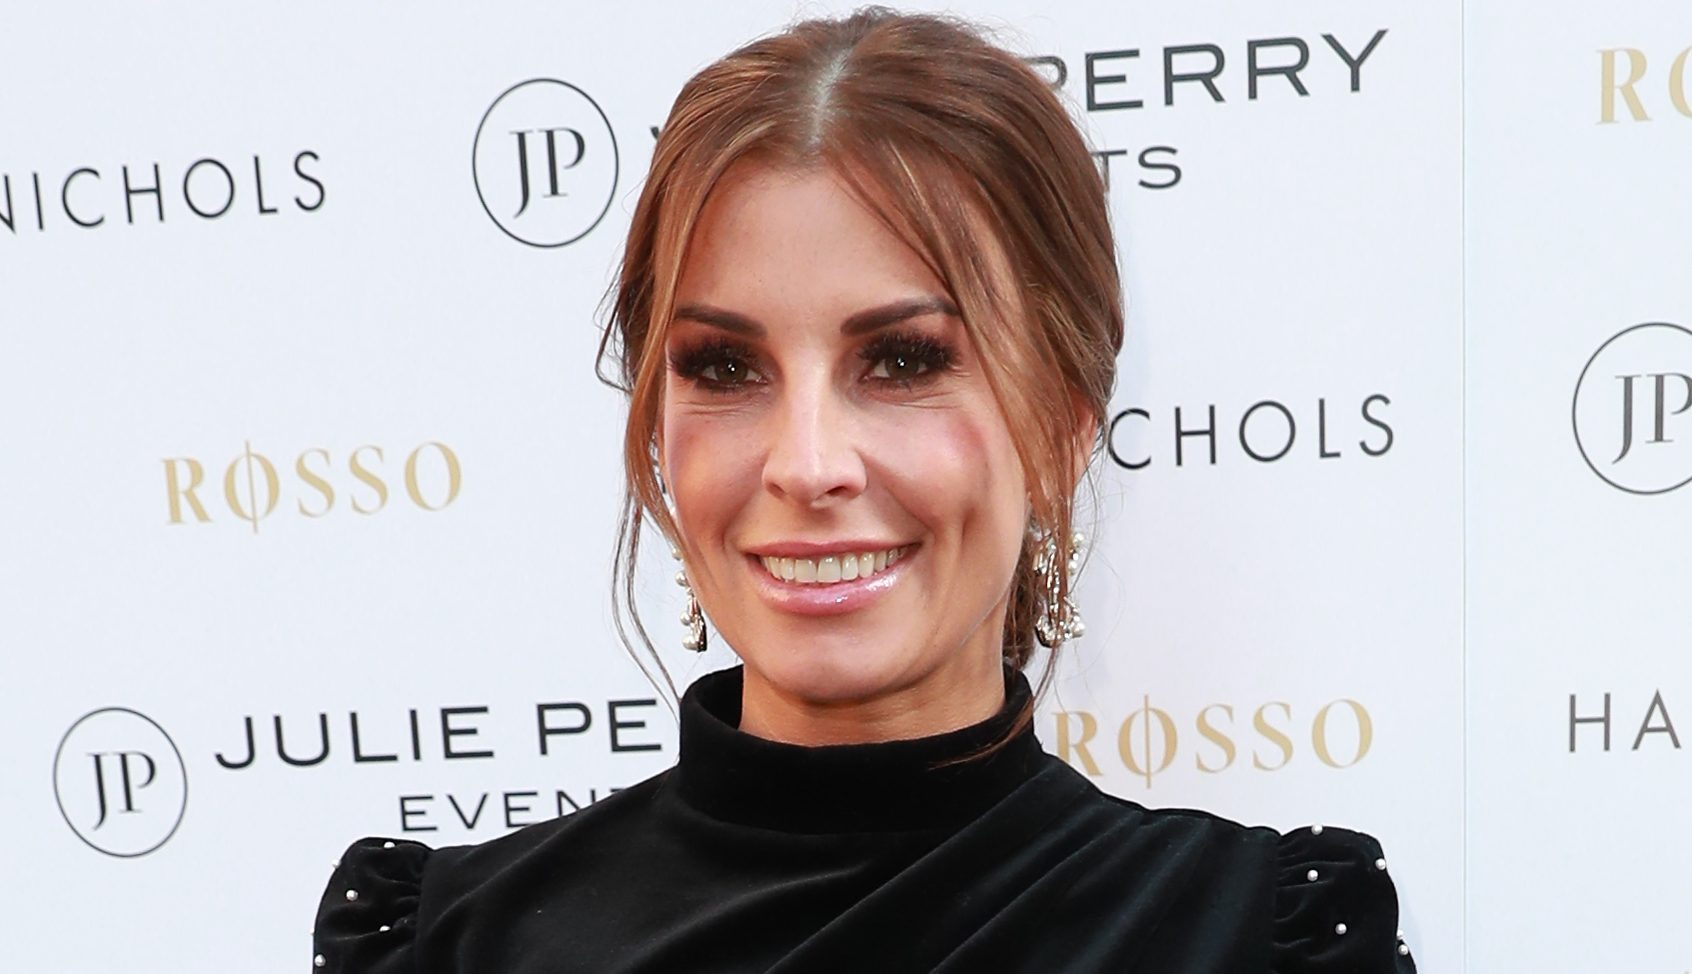 Beaming Coleen Rooney shares cute snaps from festive day out with son Cass